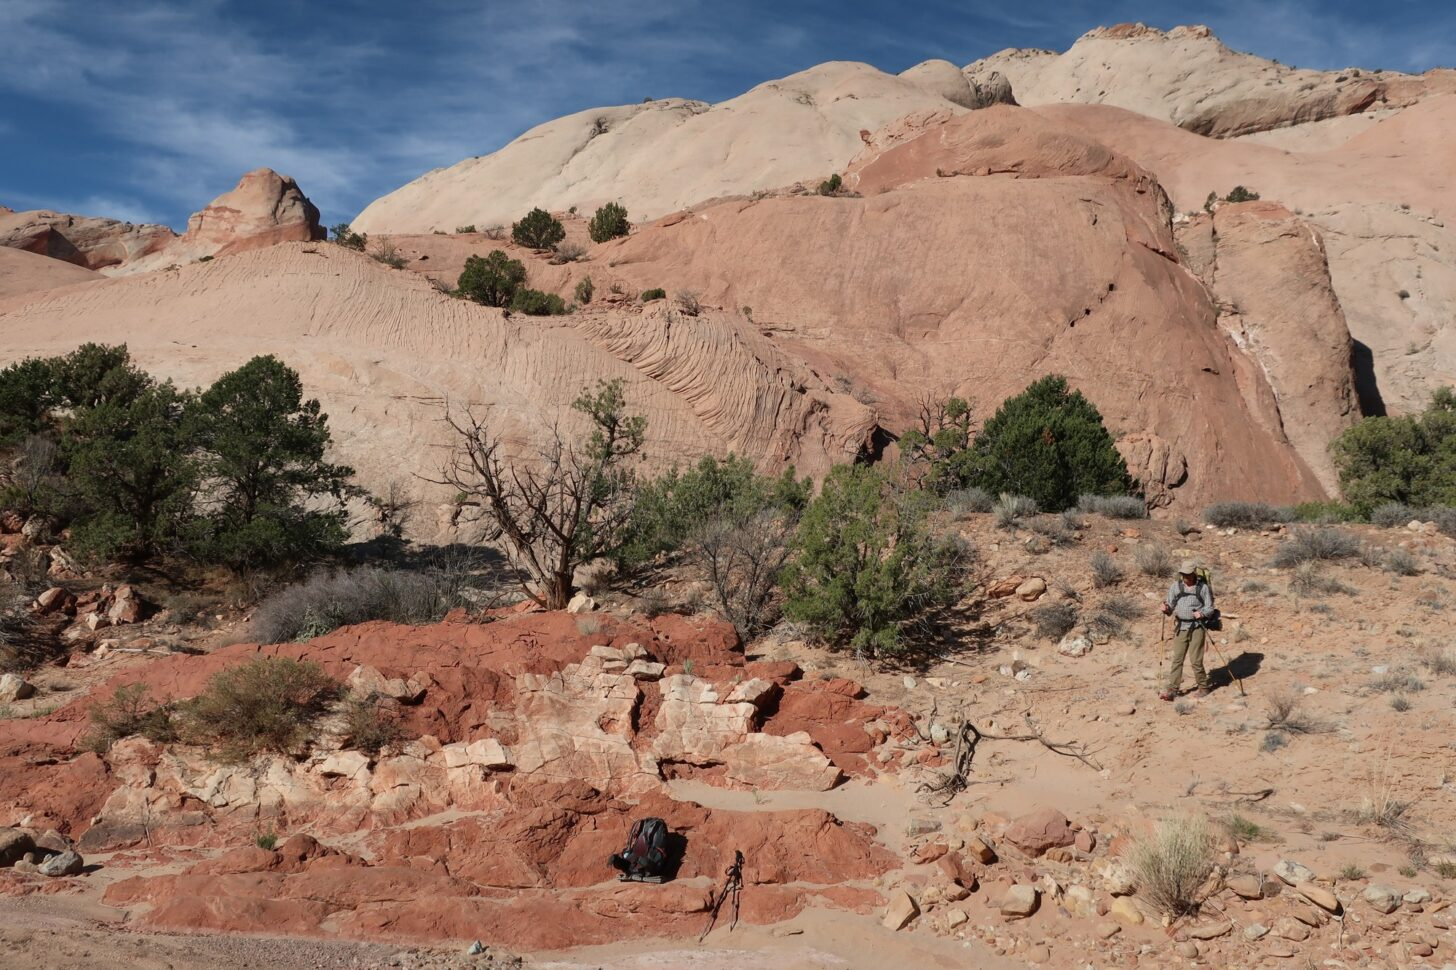 a small figure is dwarfed by piles and swirls of red and tan stone